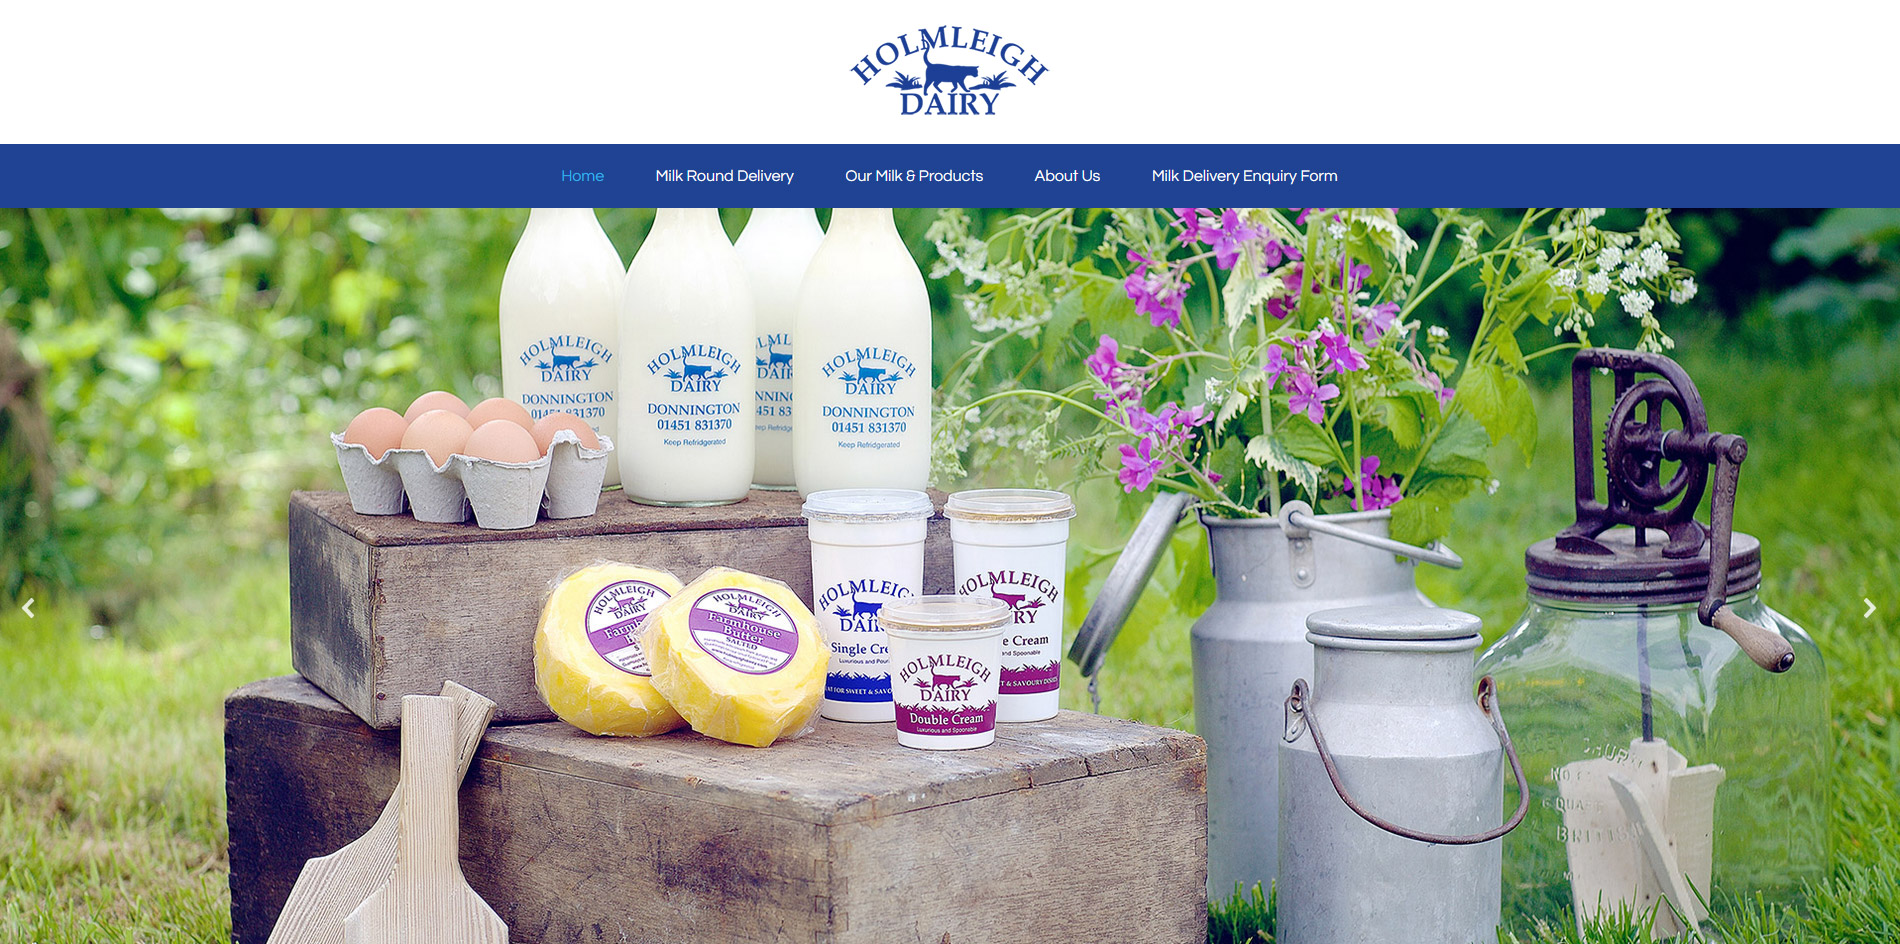 Holmleigh Dairy Website